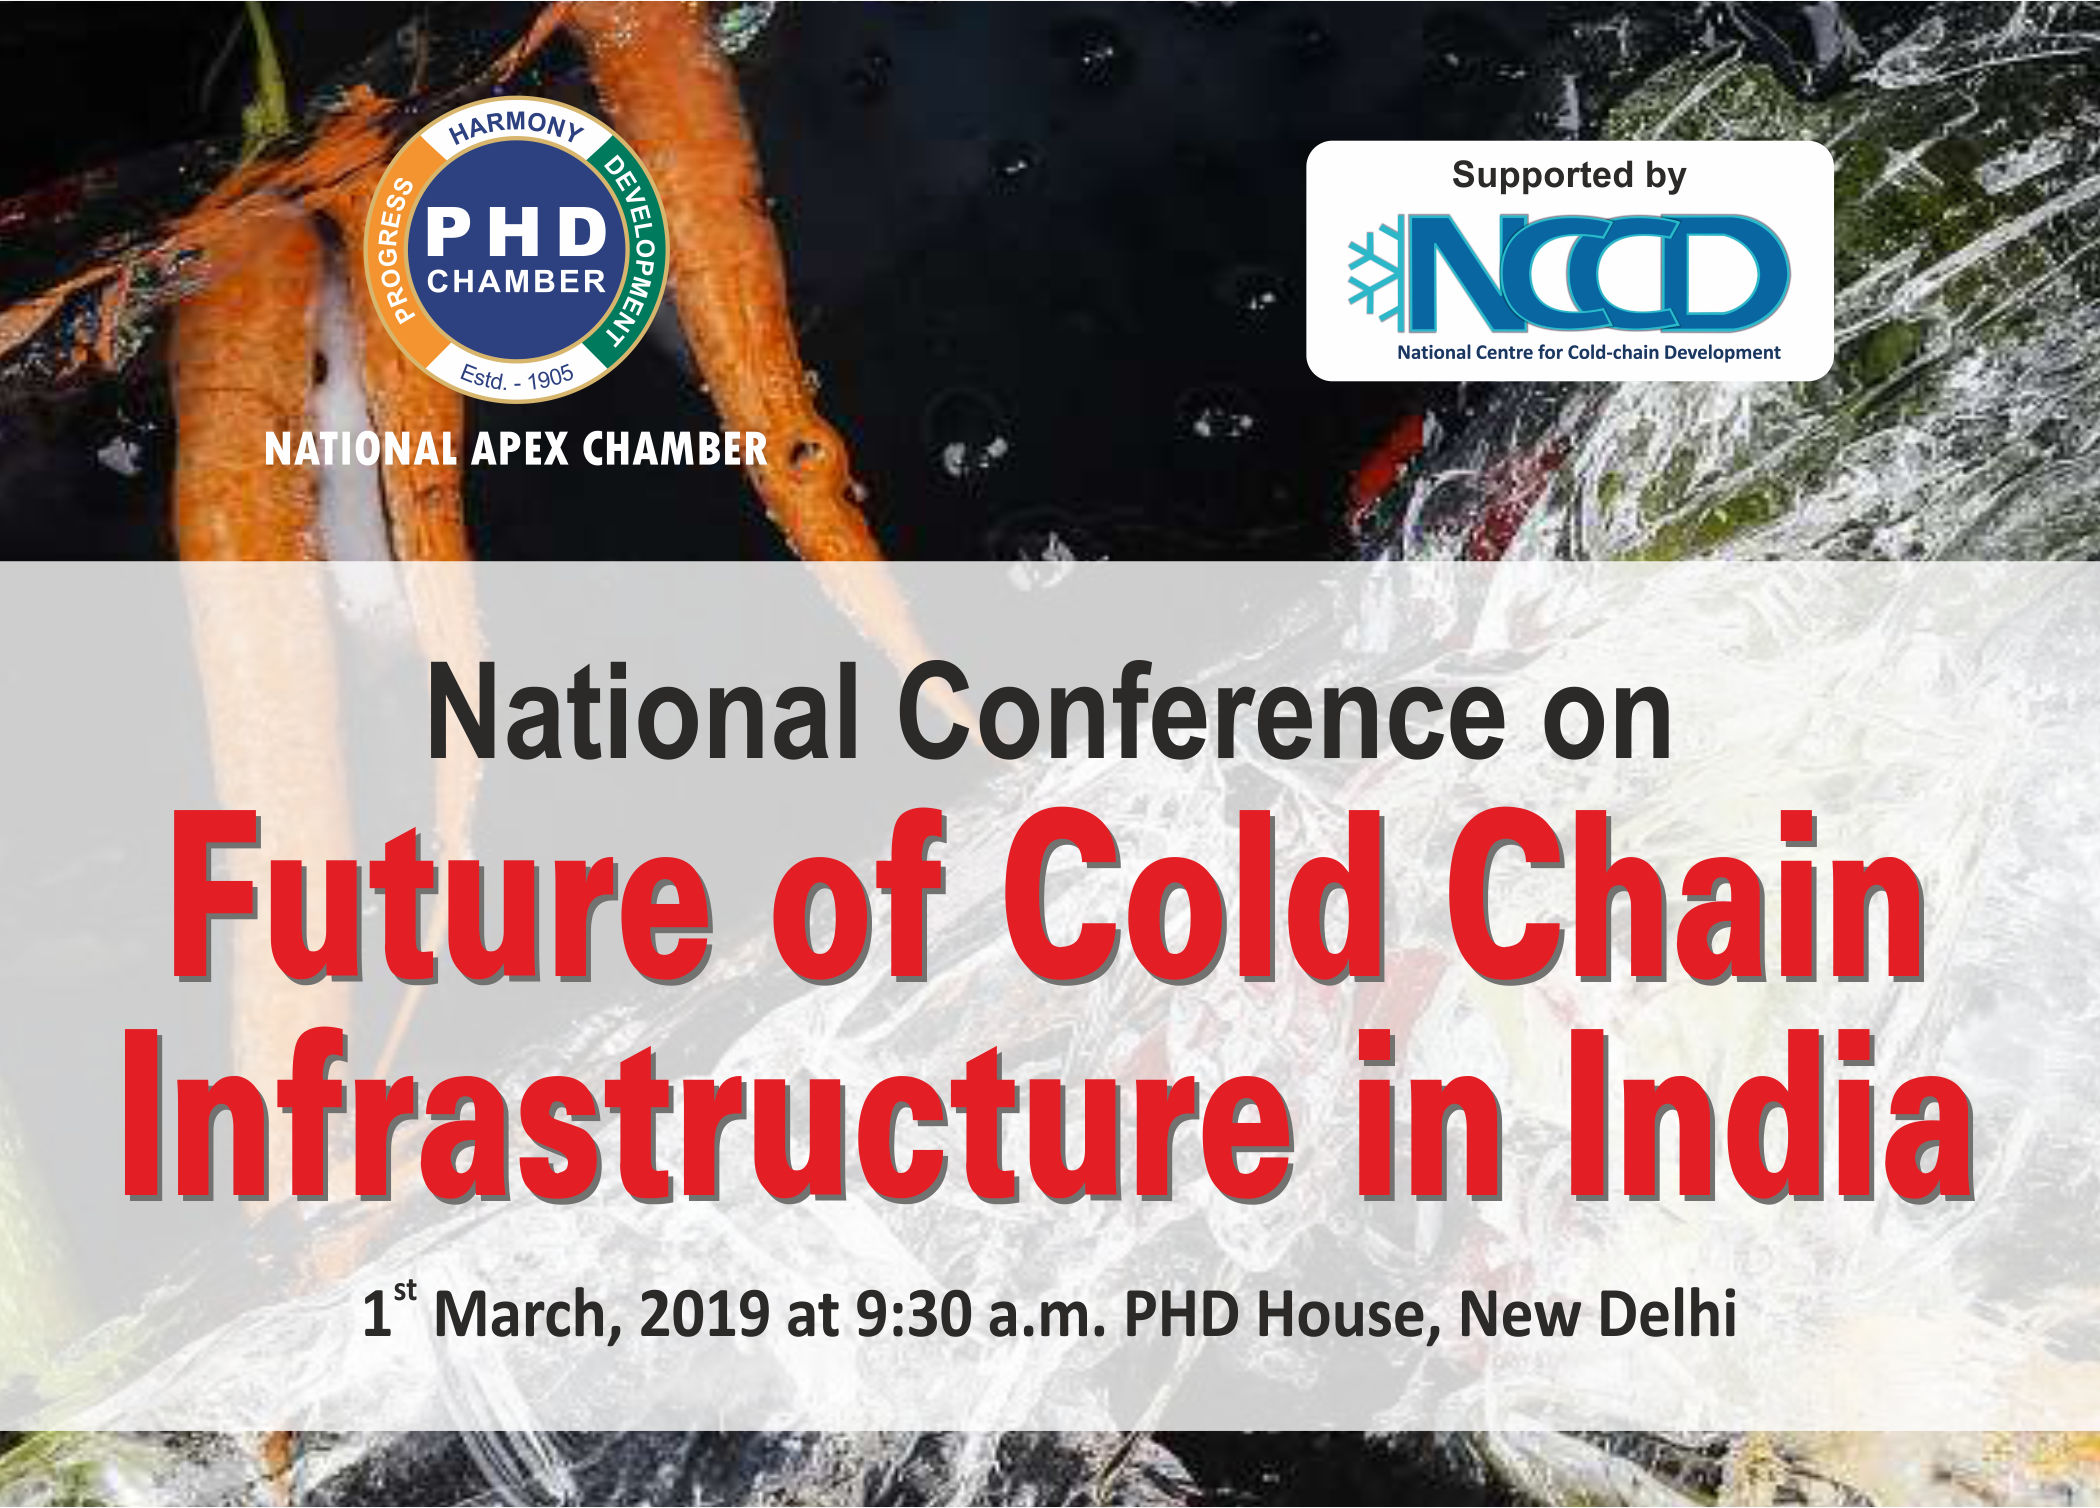 National Conference on Future of Cold Chain Infrastructure in India